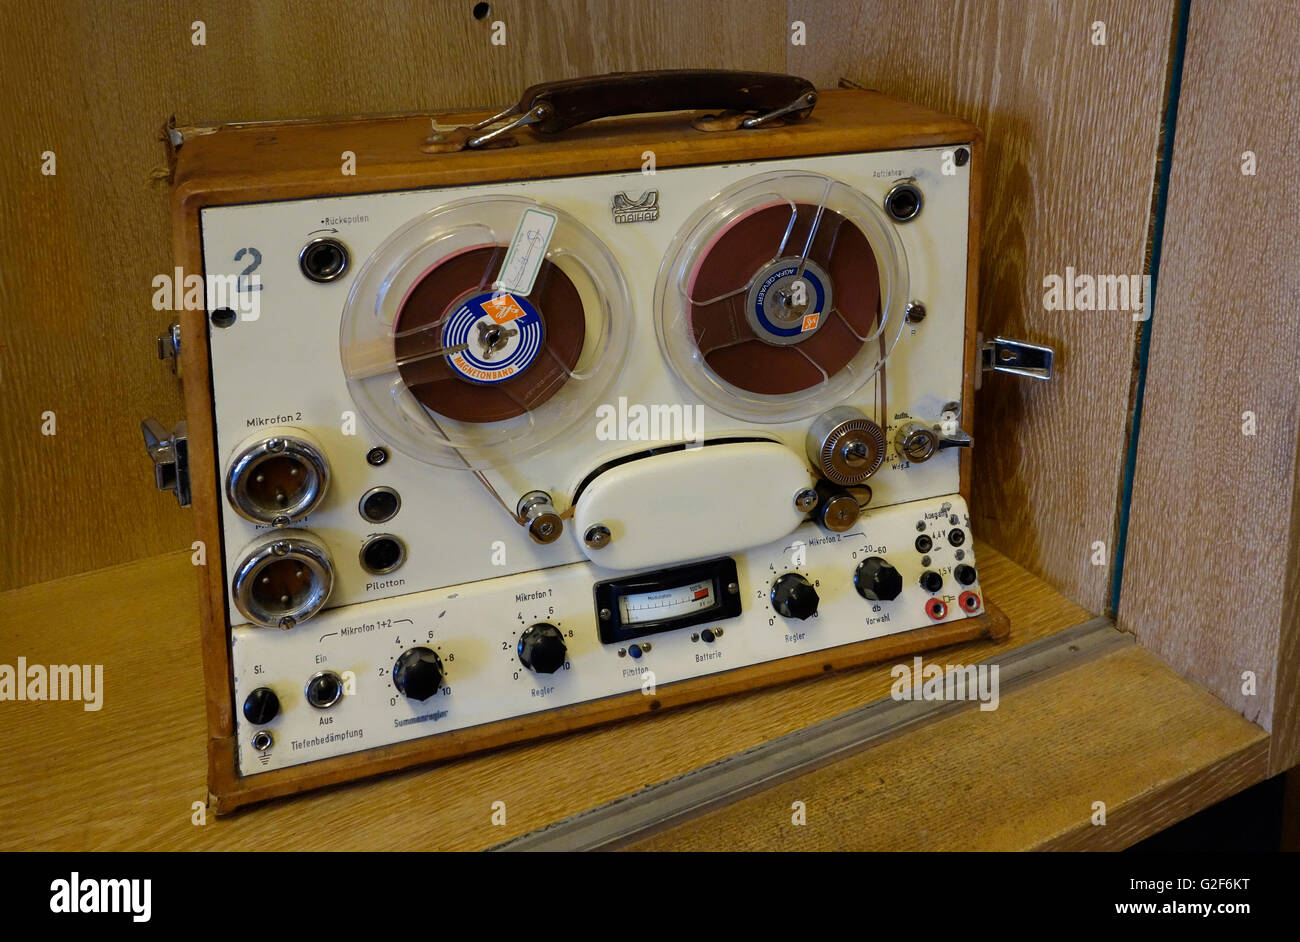 Maihak Reportofon MMK 6 Tape Recorder, c. 1957. A self-powered machine for field work - Stock Image